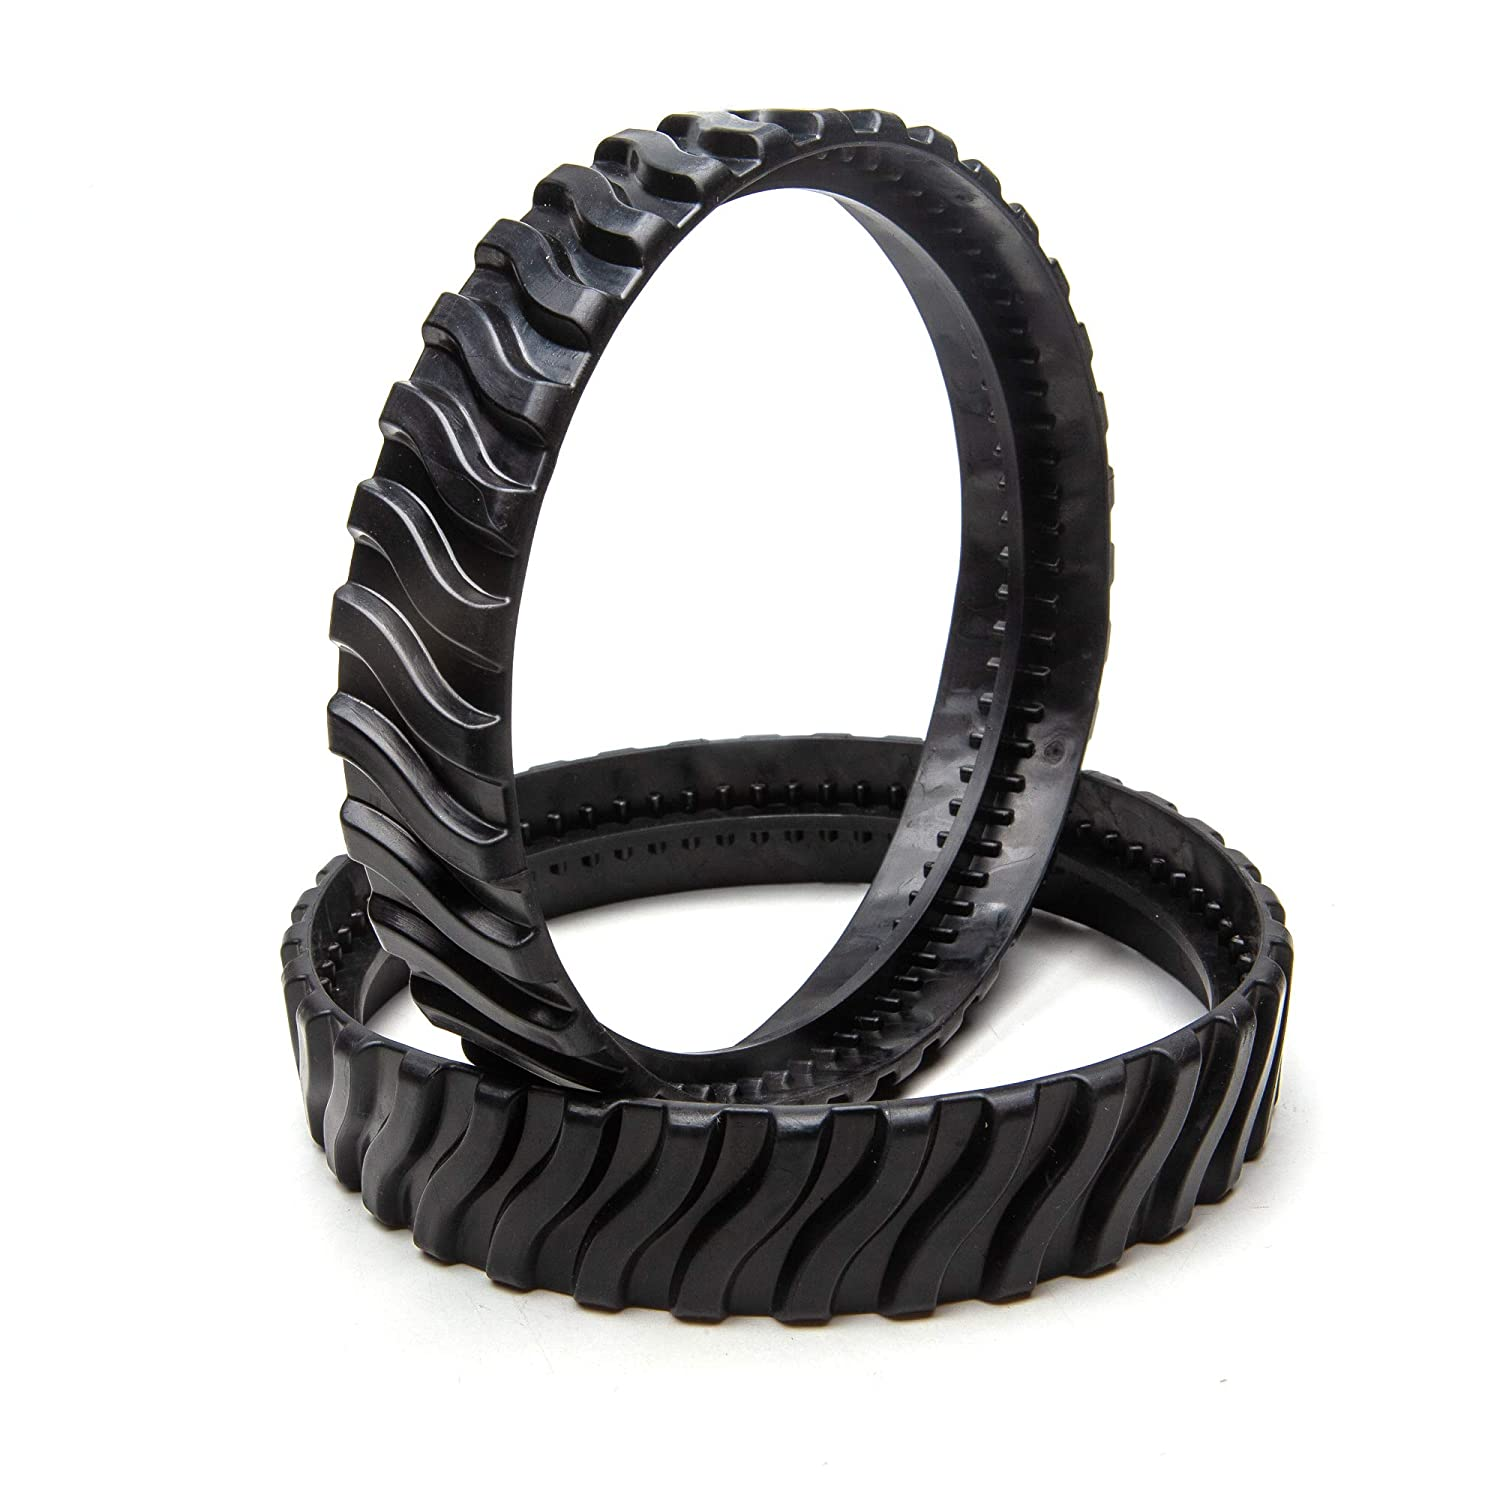 ATIE Pool Cleaner Track Replacement Fits Zodiac MX8 Elite, MX6 Elite, MX8, Mx6 Pool Cleaner Tire Track R0526100 (2 Pack)